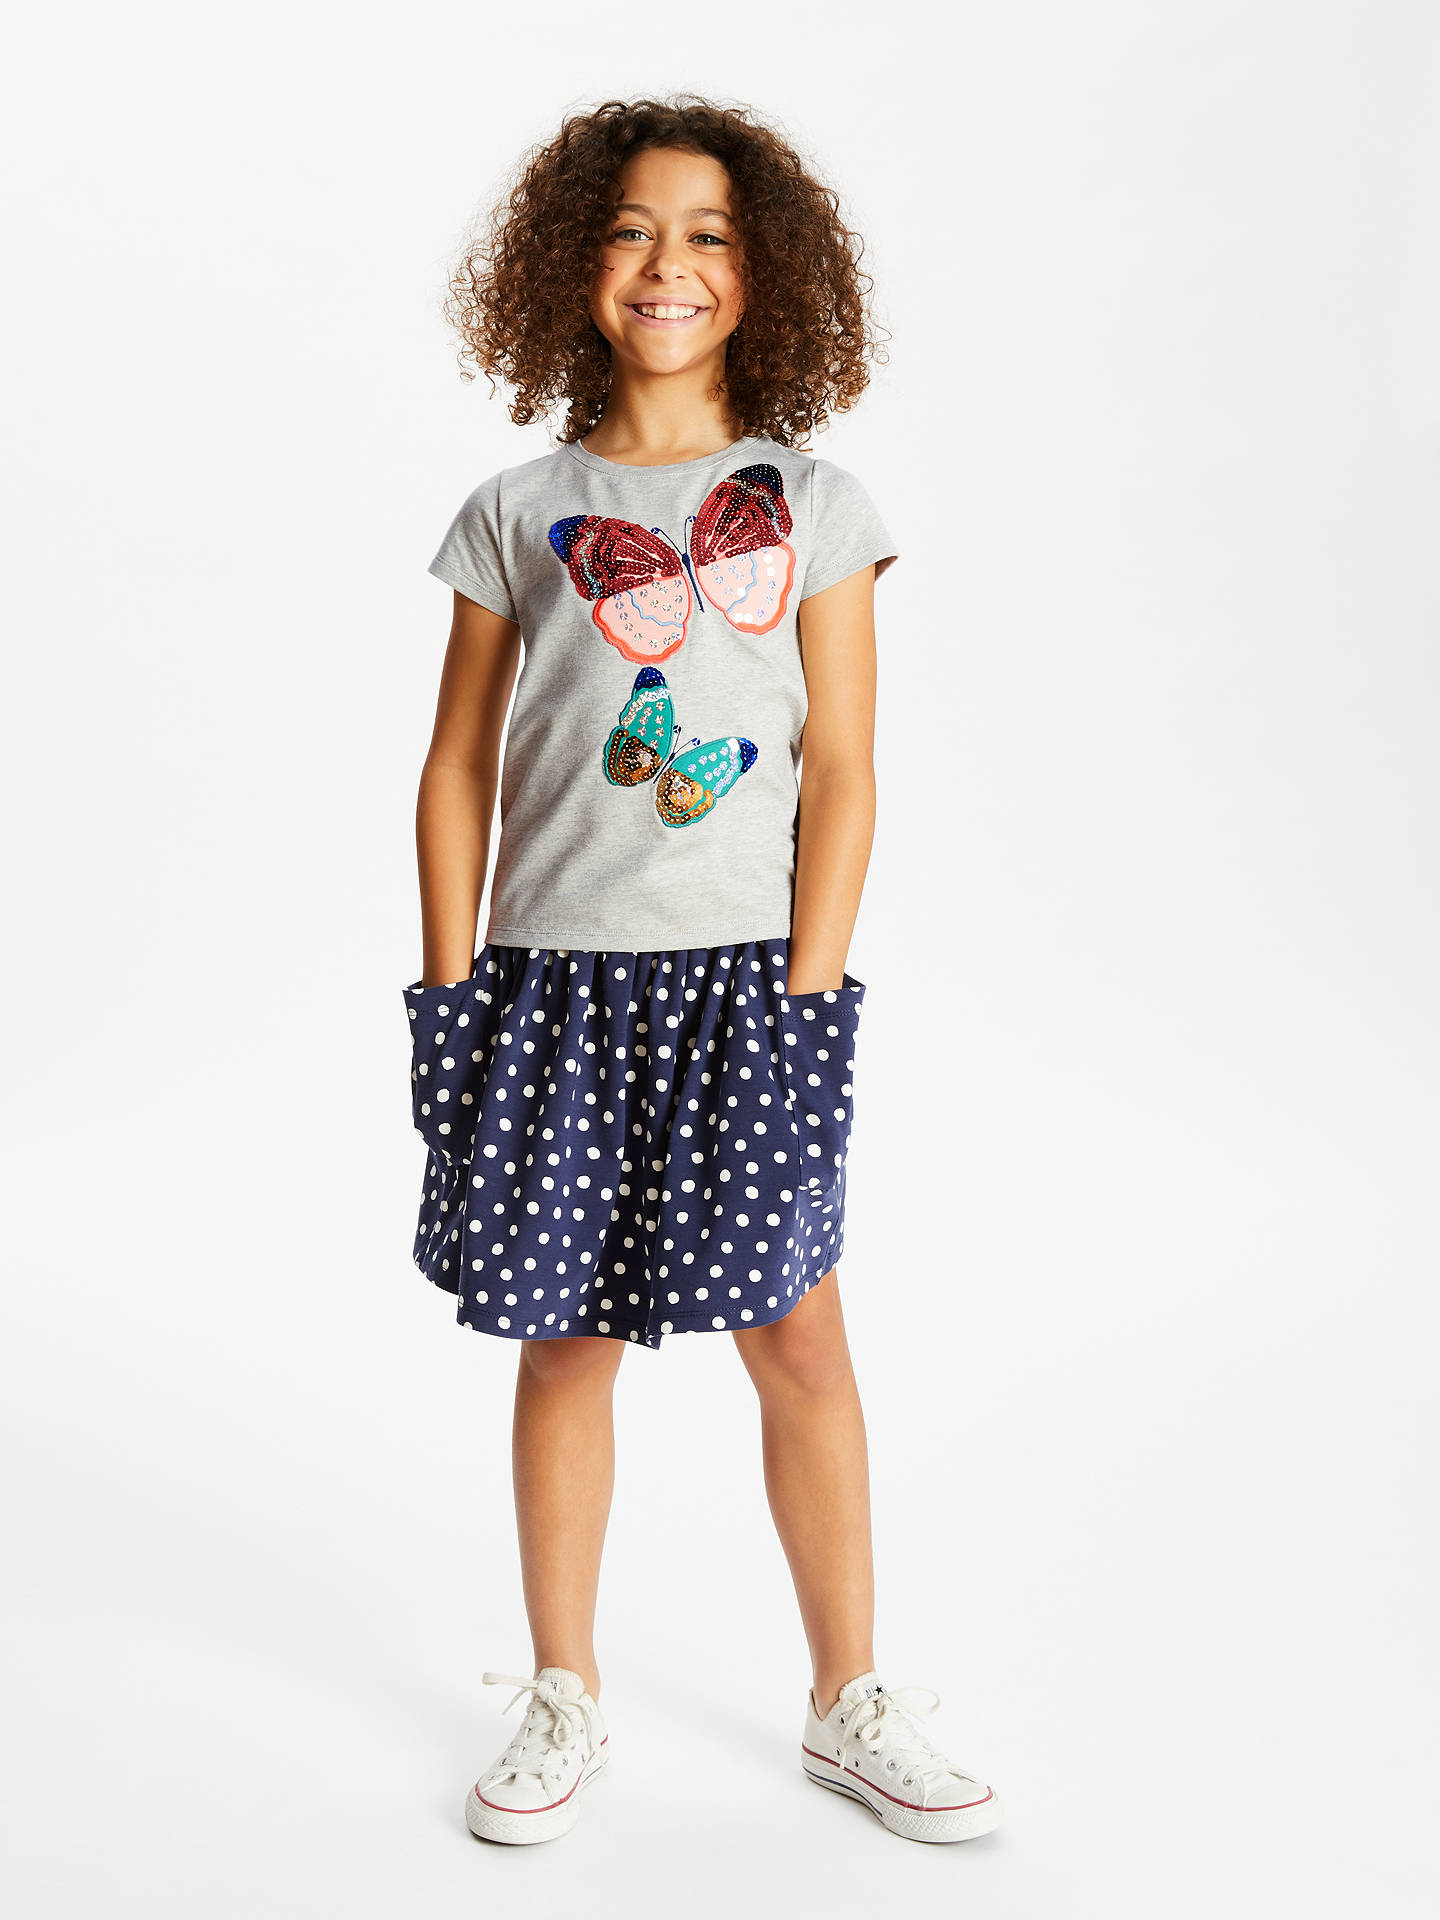 a5e3c789 ... Buy John Lewis & Partners Girls' Butterfly Sequin T-Shirt, Grey, 12 ...